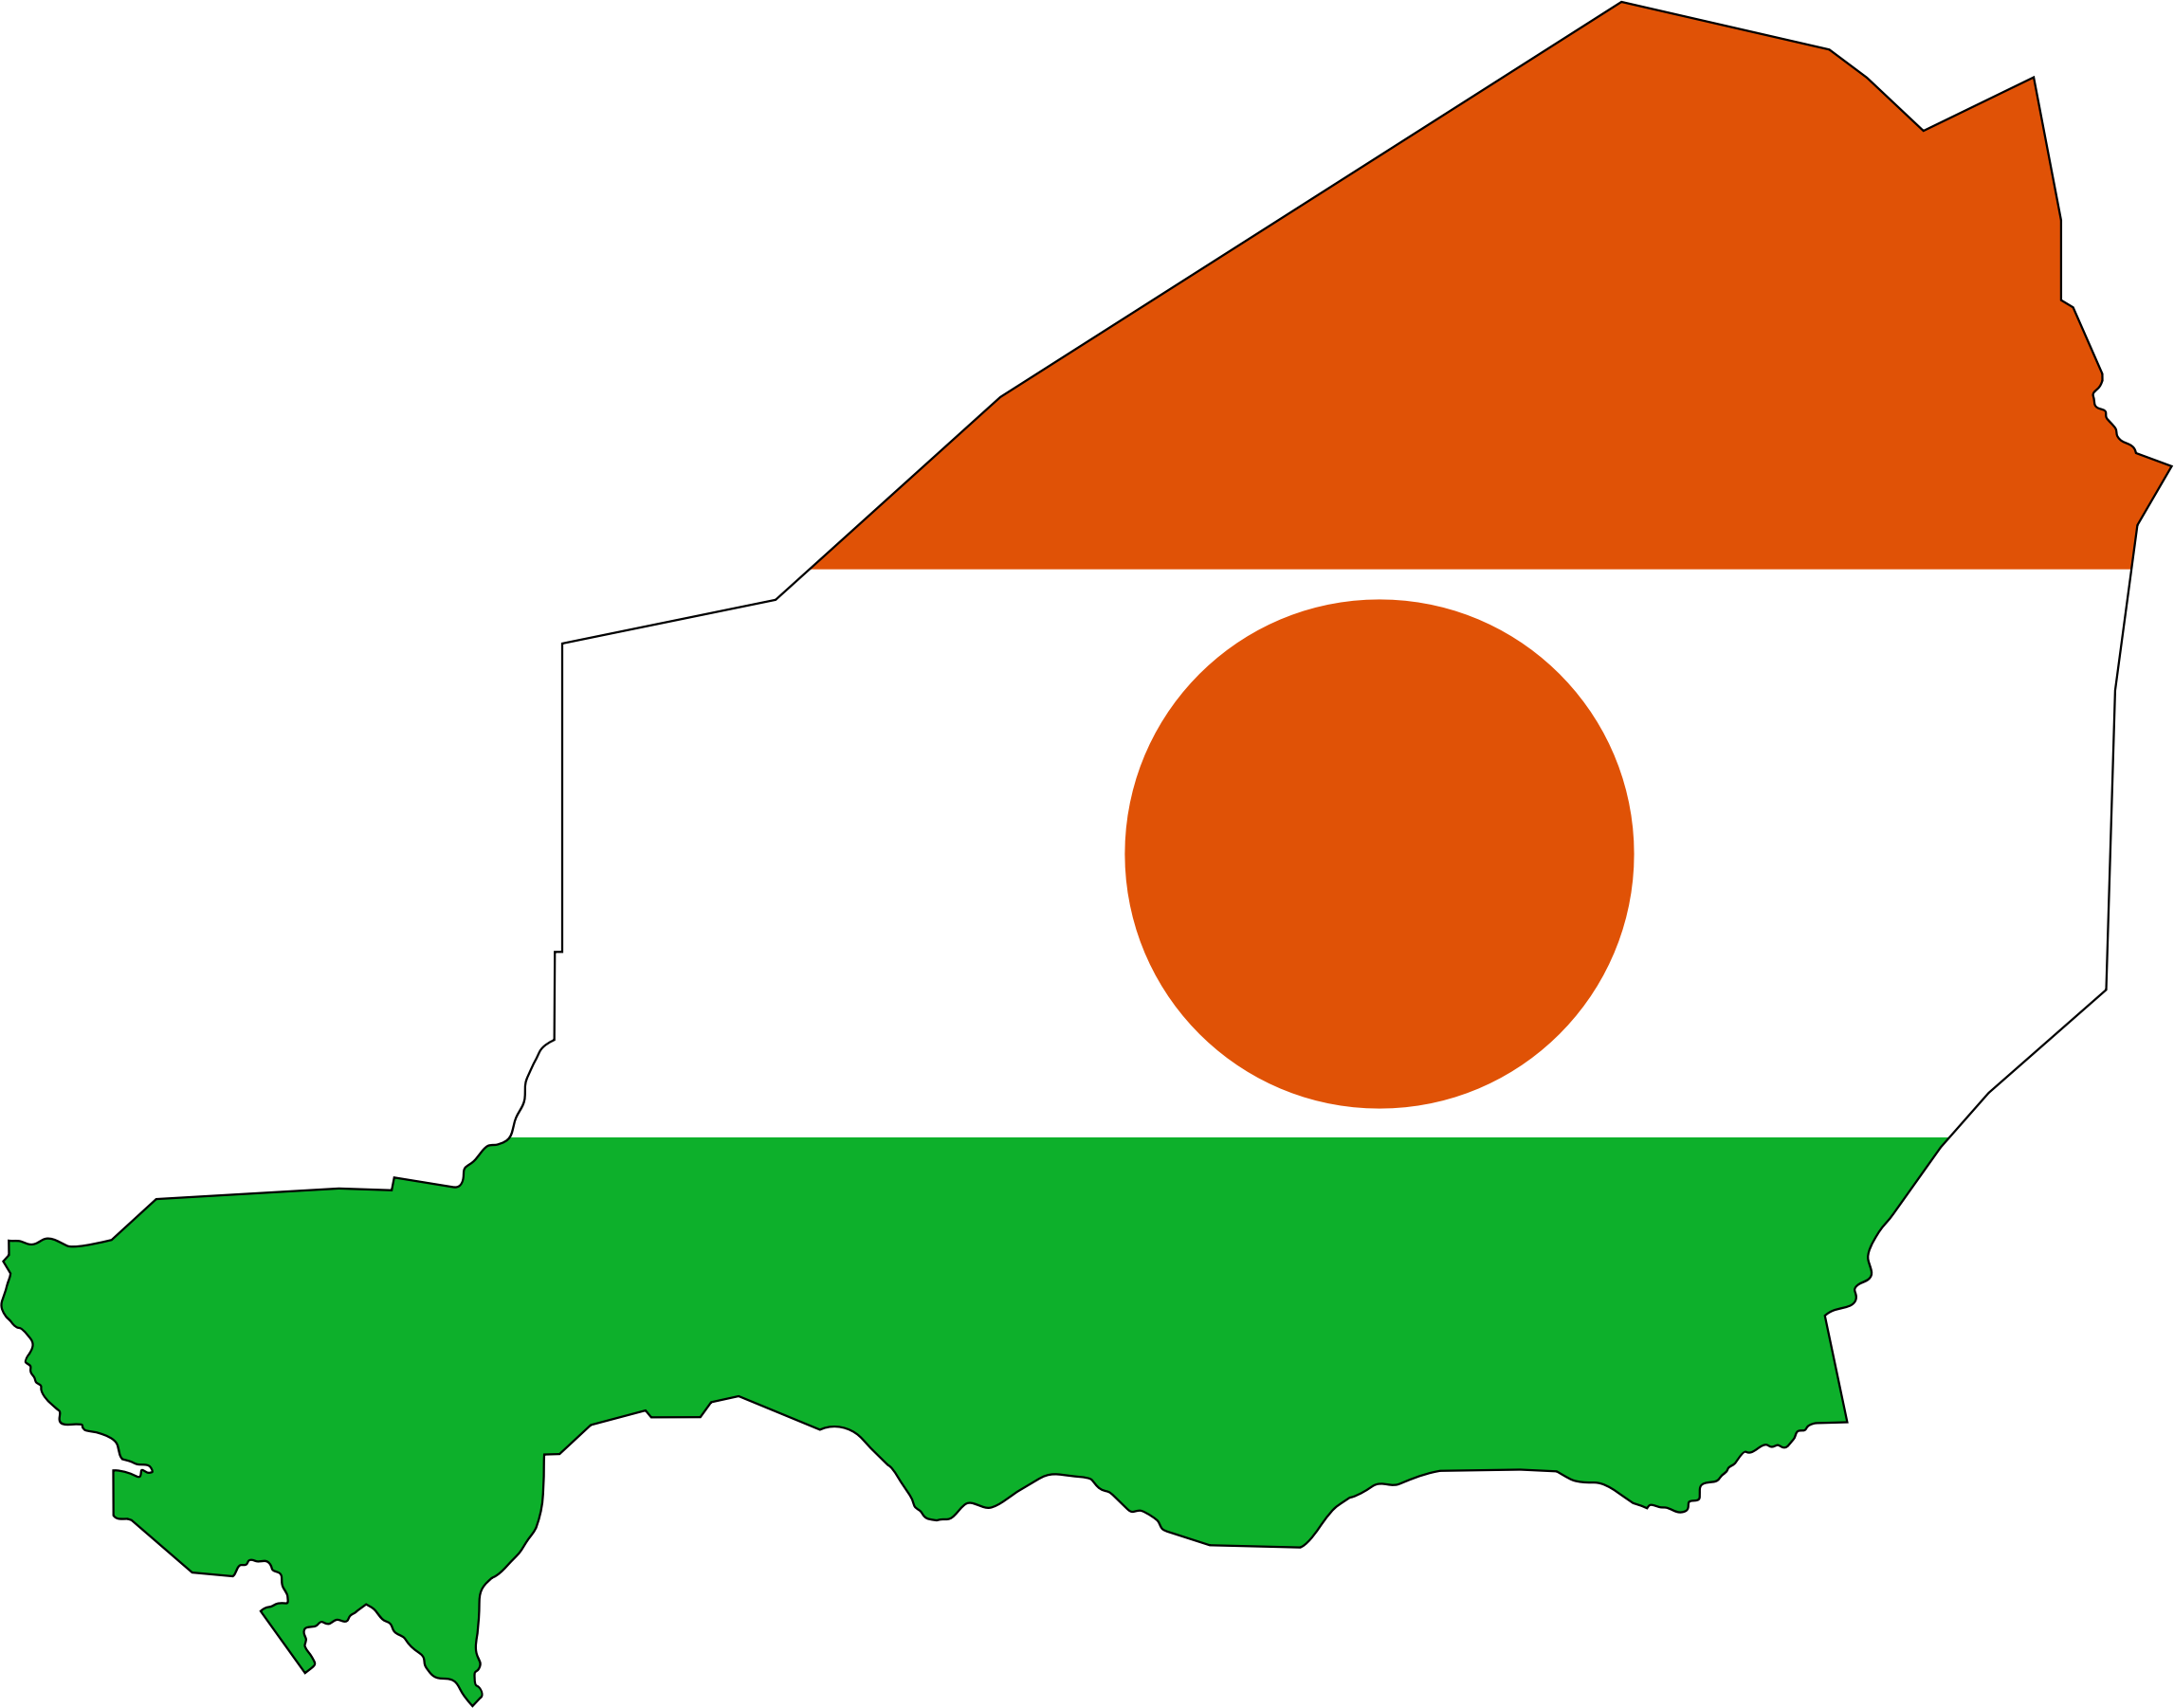 Niger Flag Map With Stroke by GDJ